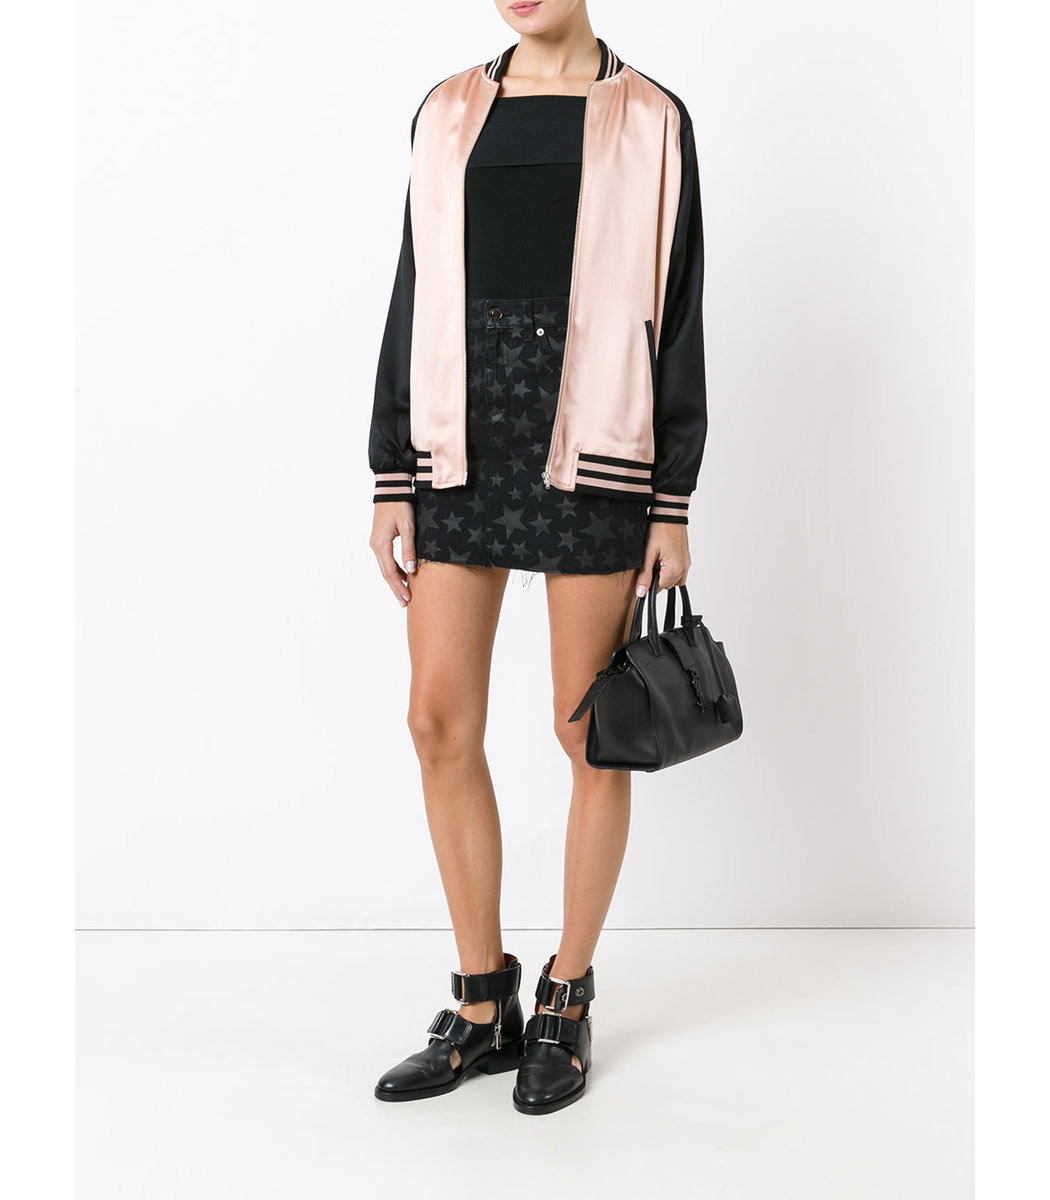 Saint Laurent Oversized Baseball Jacket - Pink Wool Blend Jacket